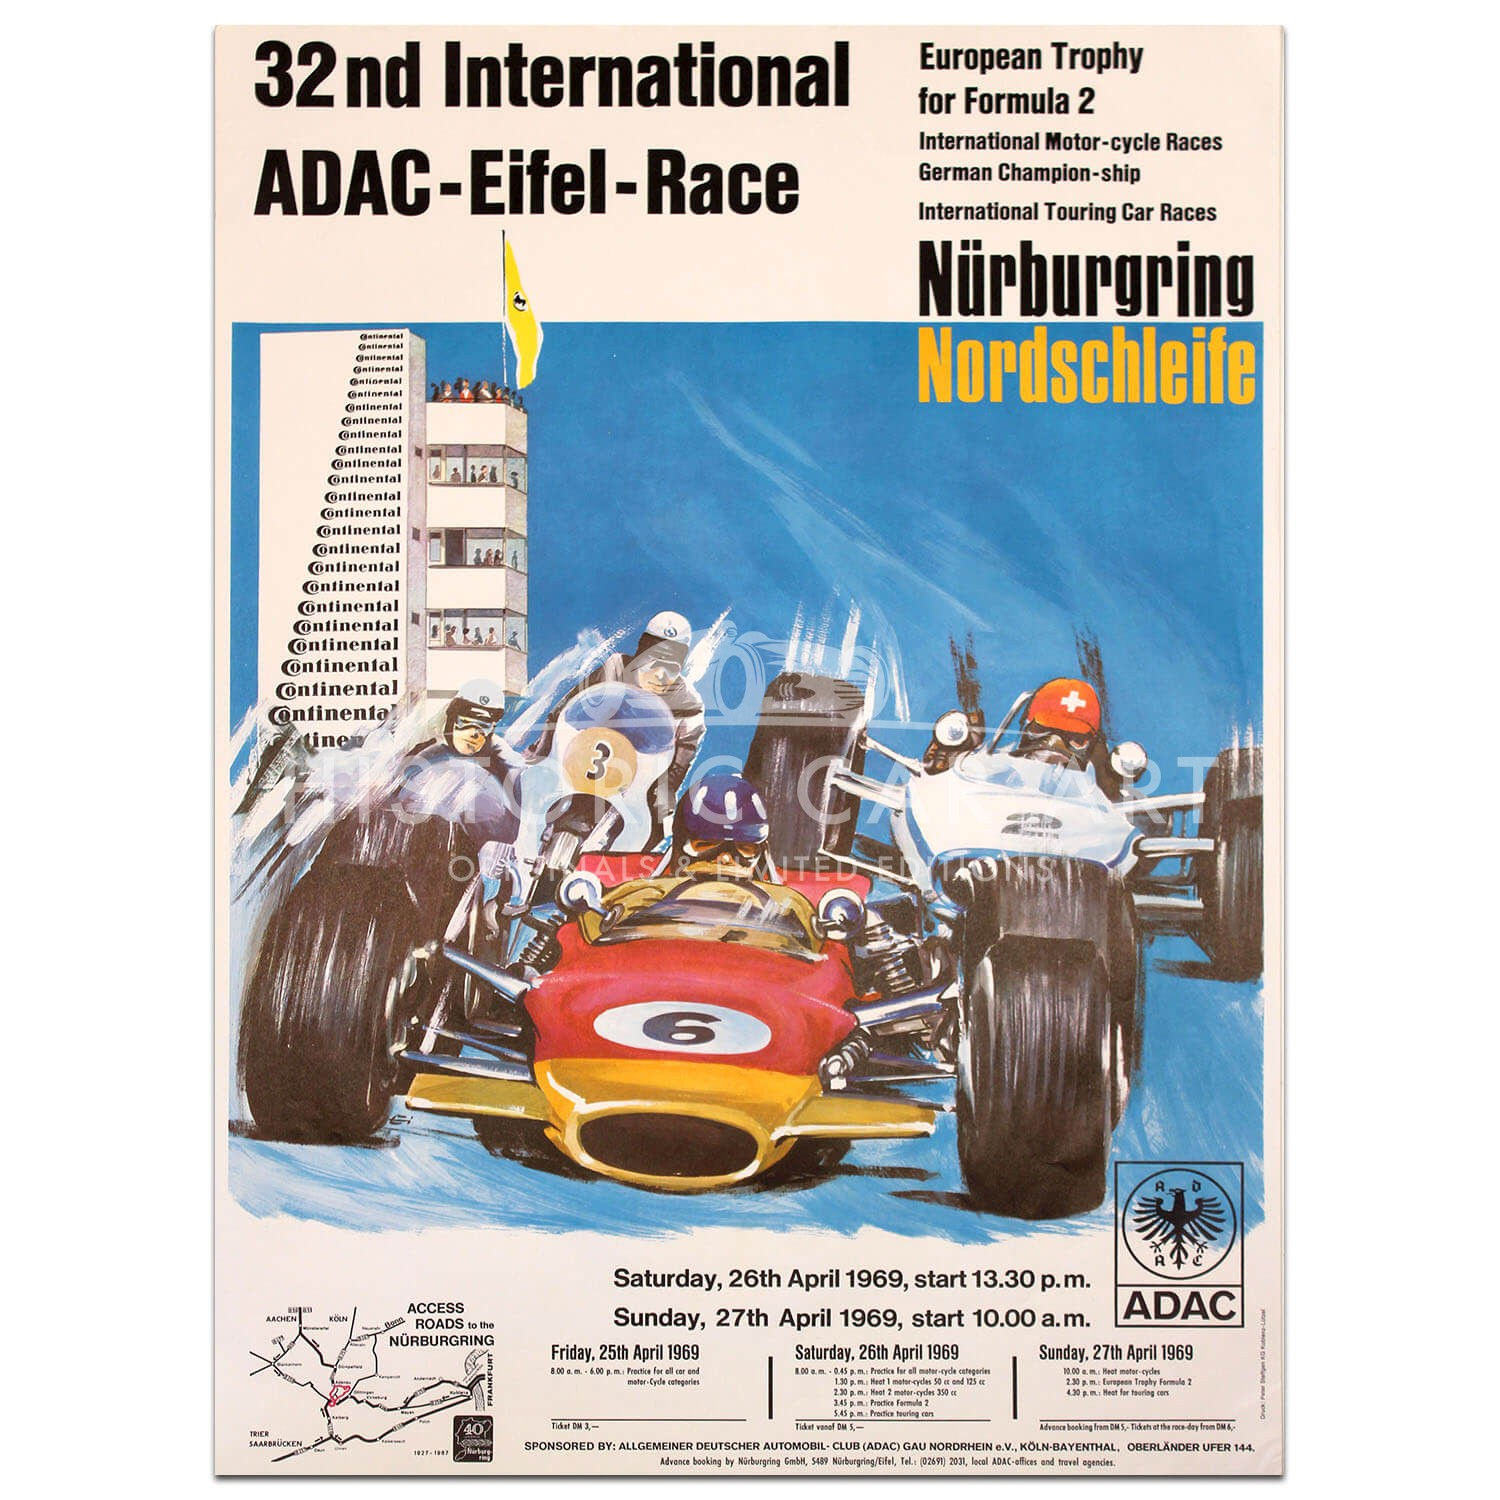 German | ADAC 32nd International Eifel Race 1969 Nurburgring Poster (Eng. Lang)